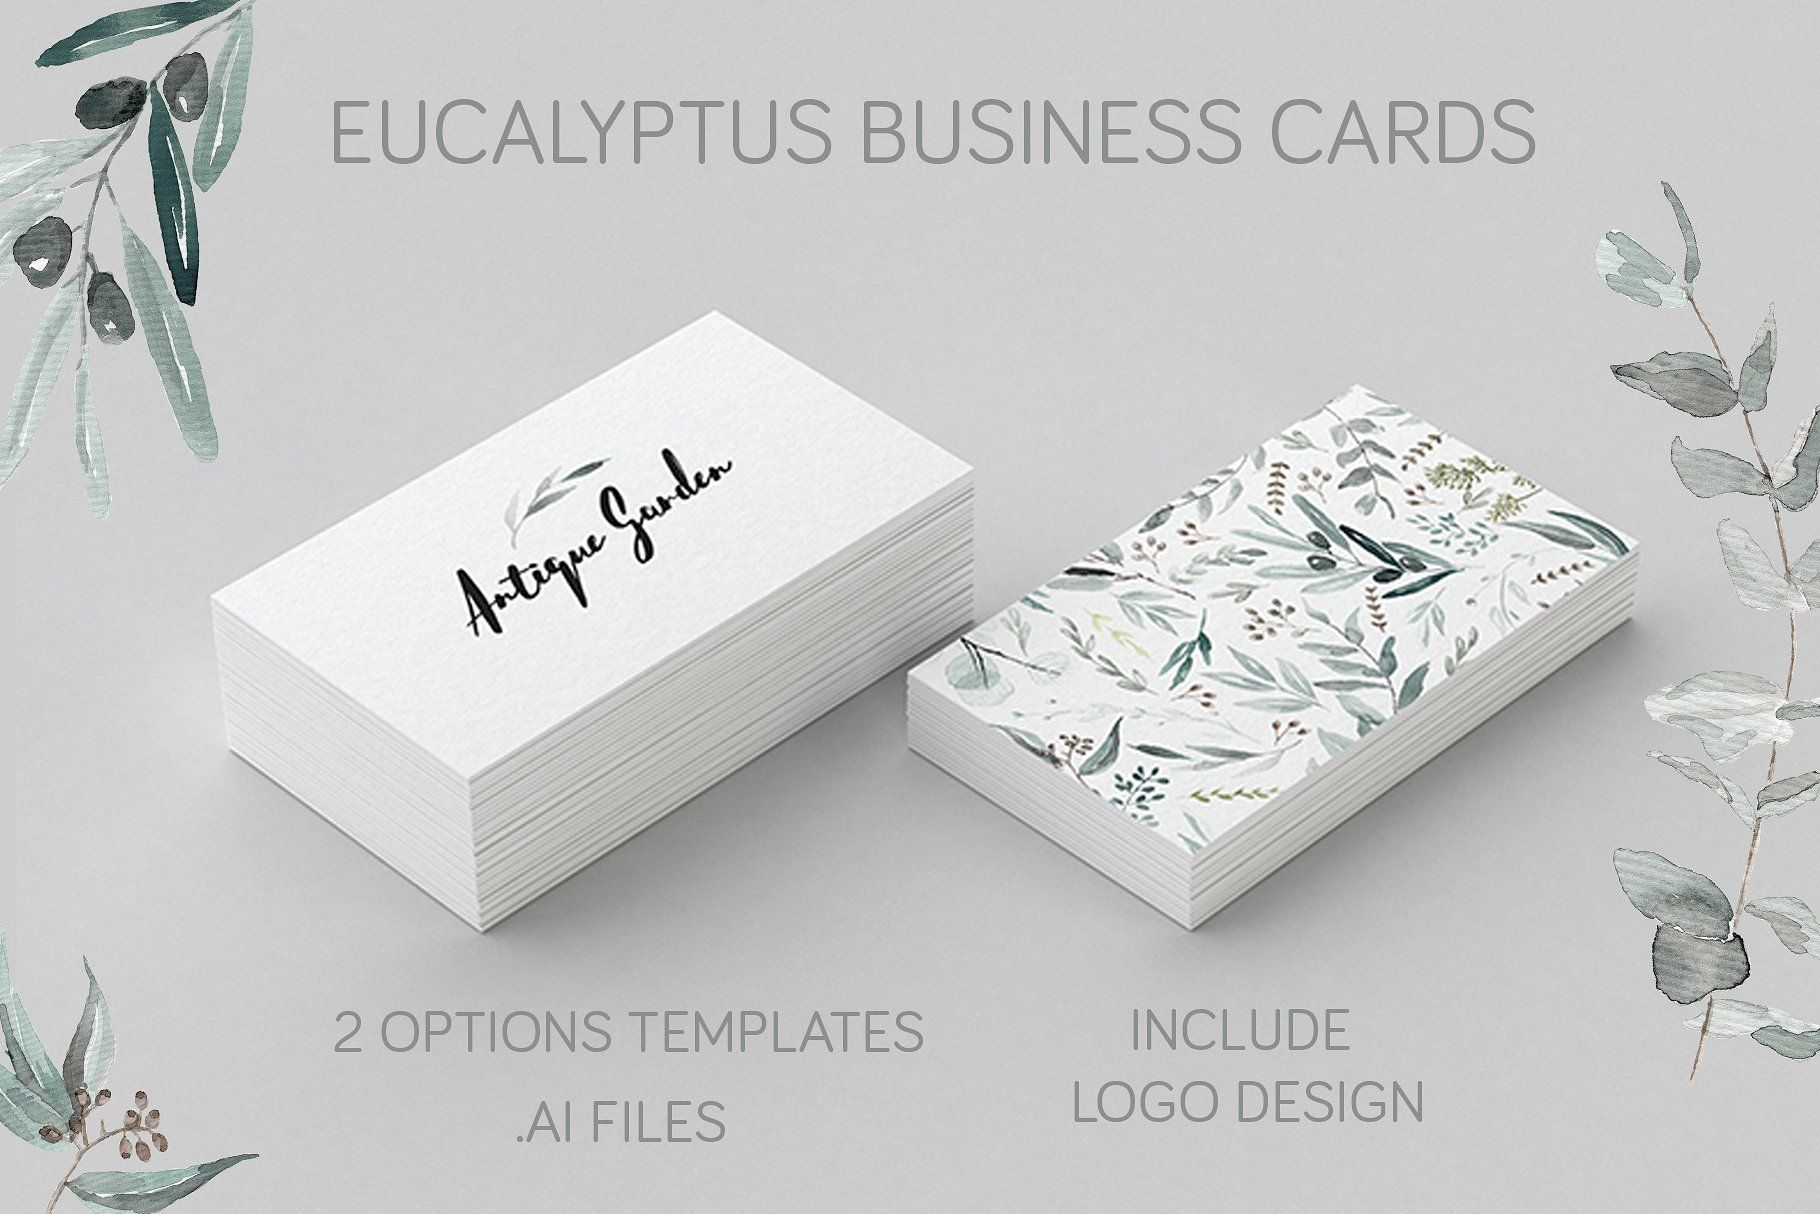 Business Cards 2 Editable Templates To Create Your Own Business